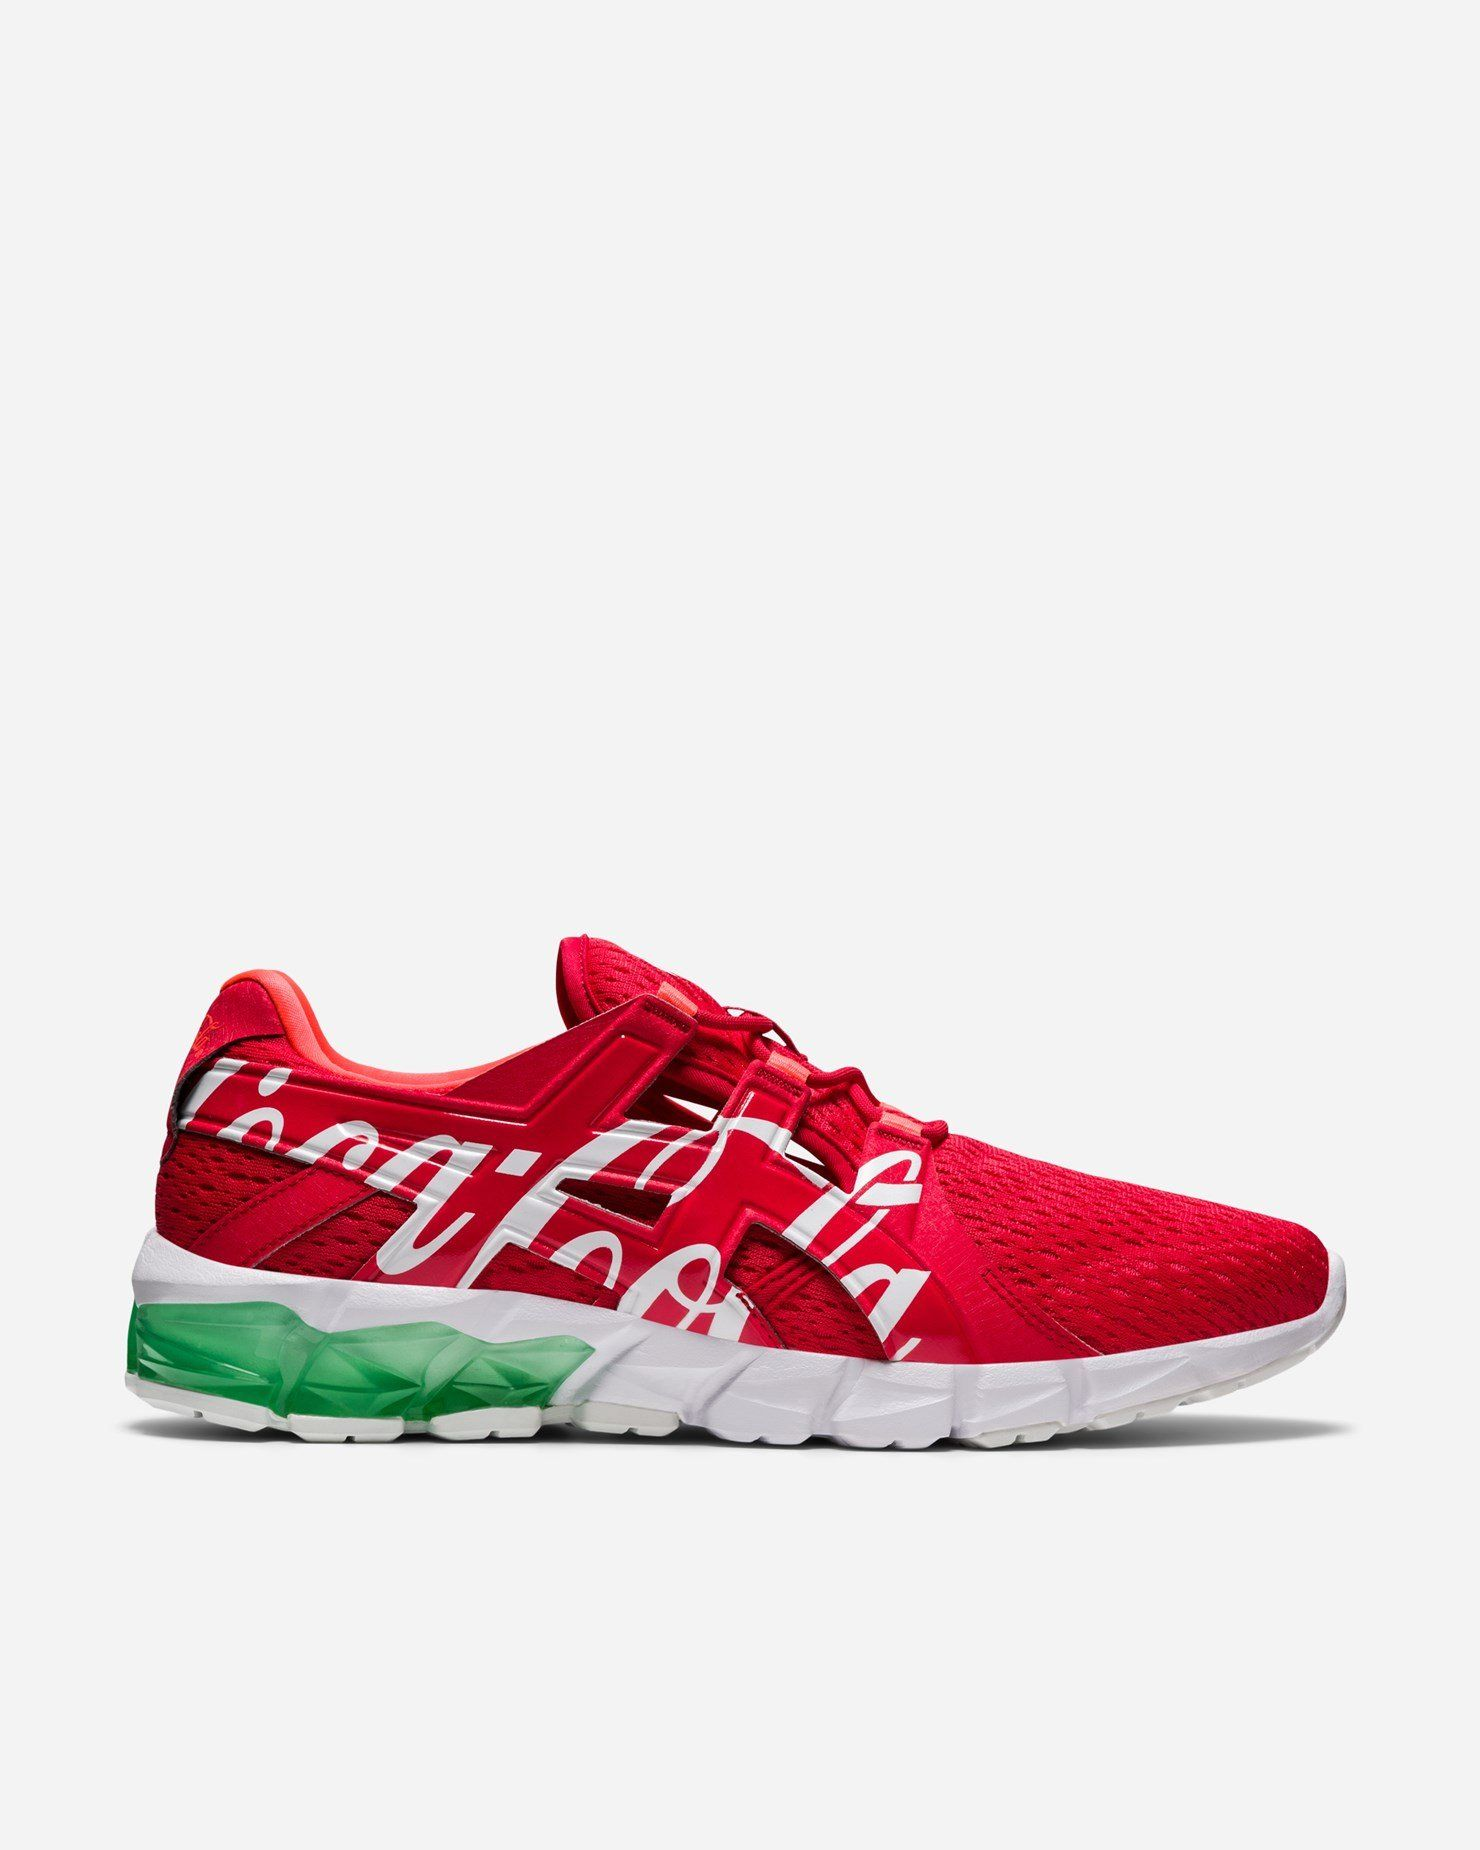 ASICS x Coca-Cola Proves Sneakers Are the New Billboards 3